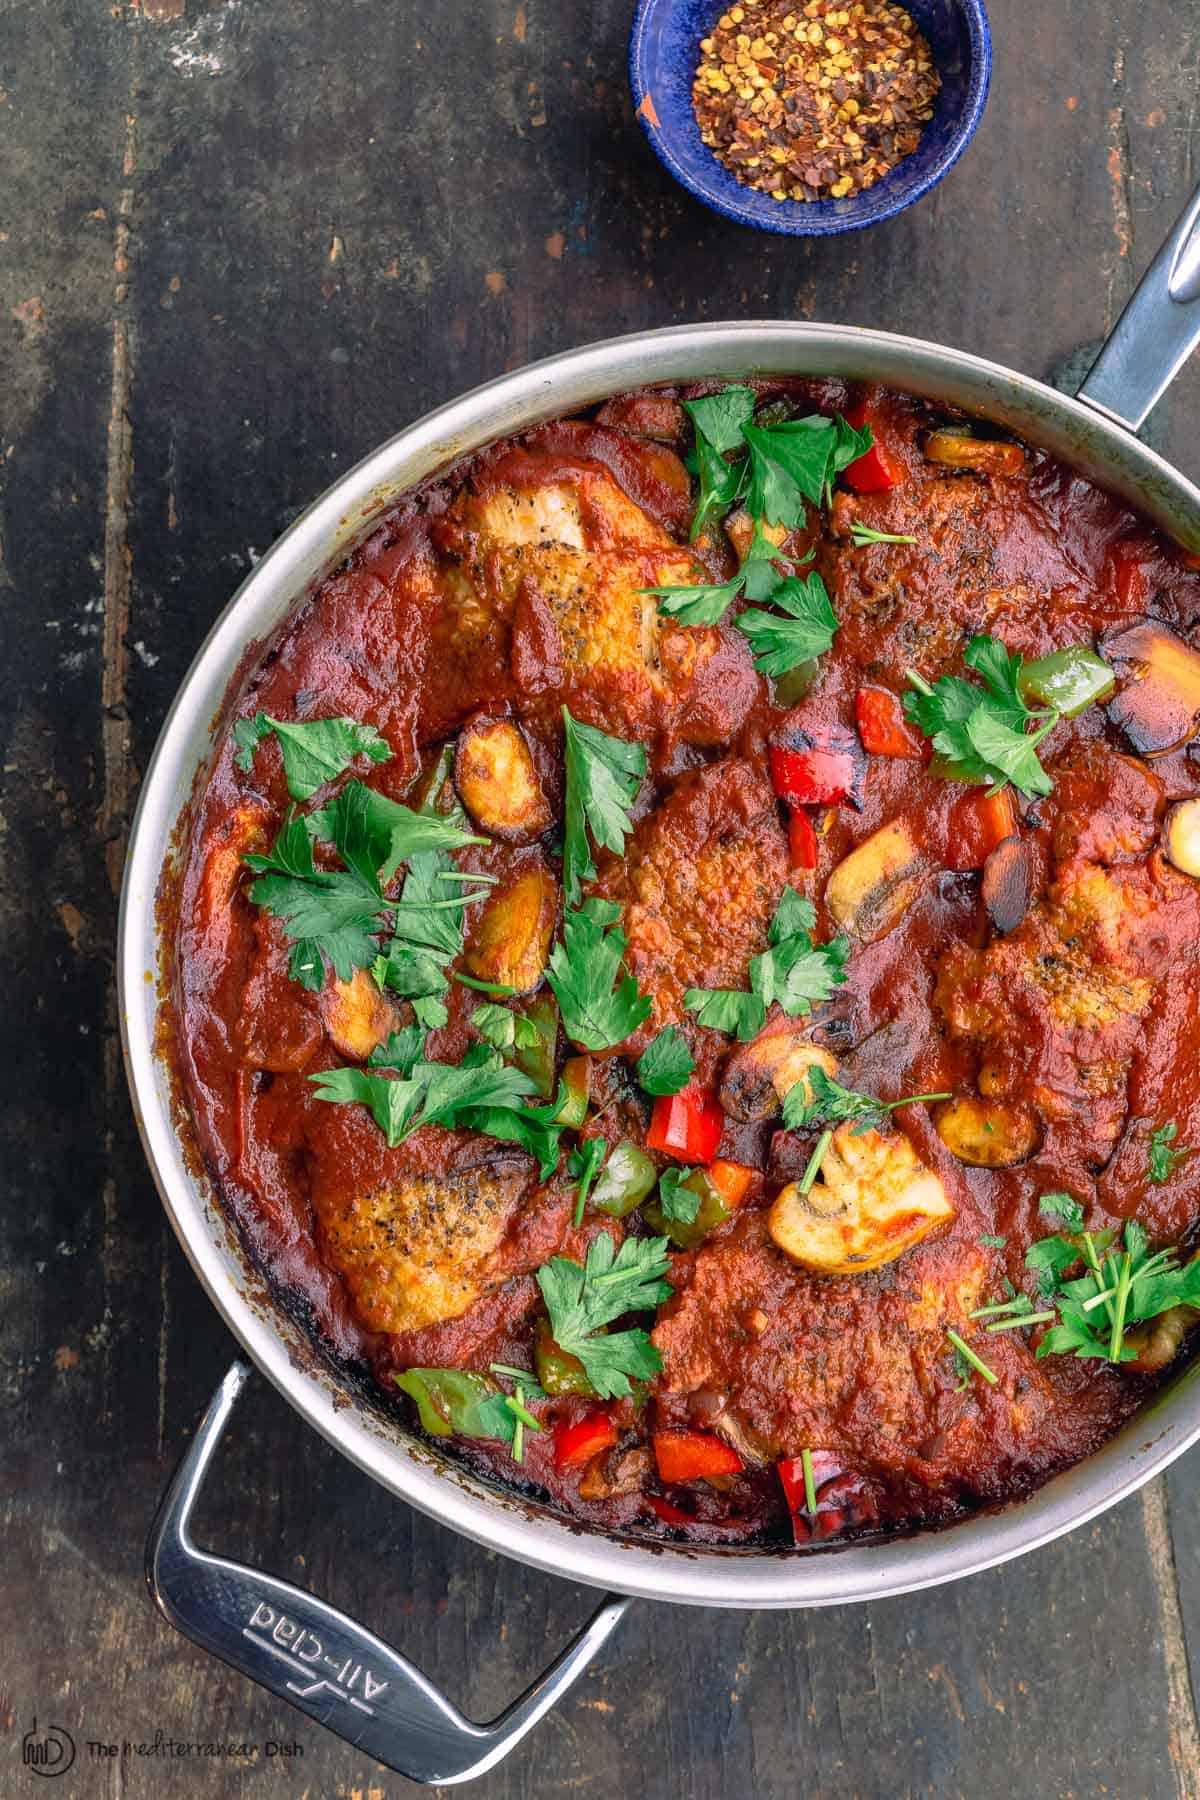 cacciatore with a side of red pepper flakes in a bowl